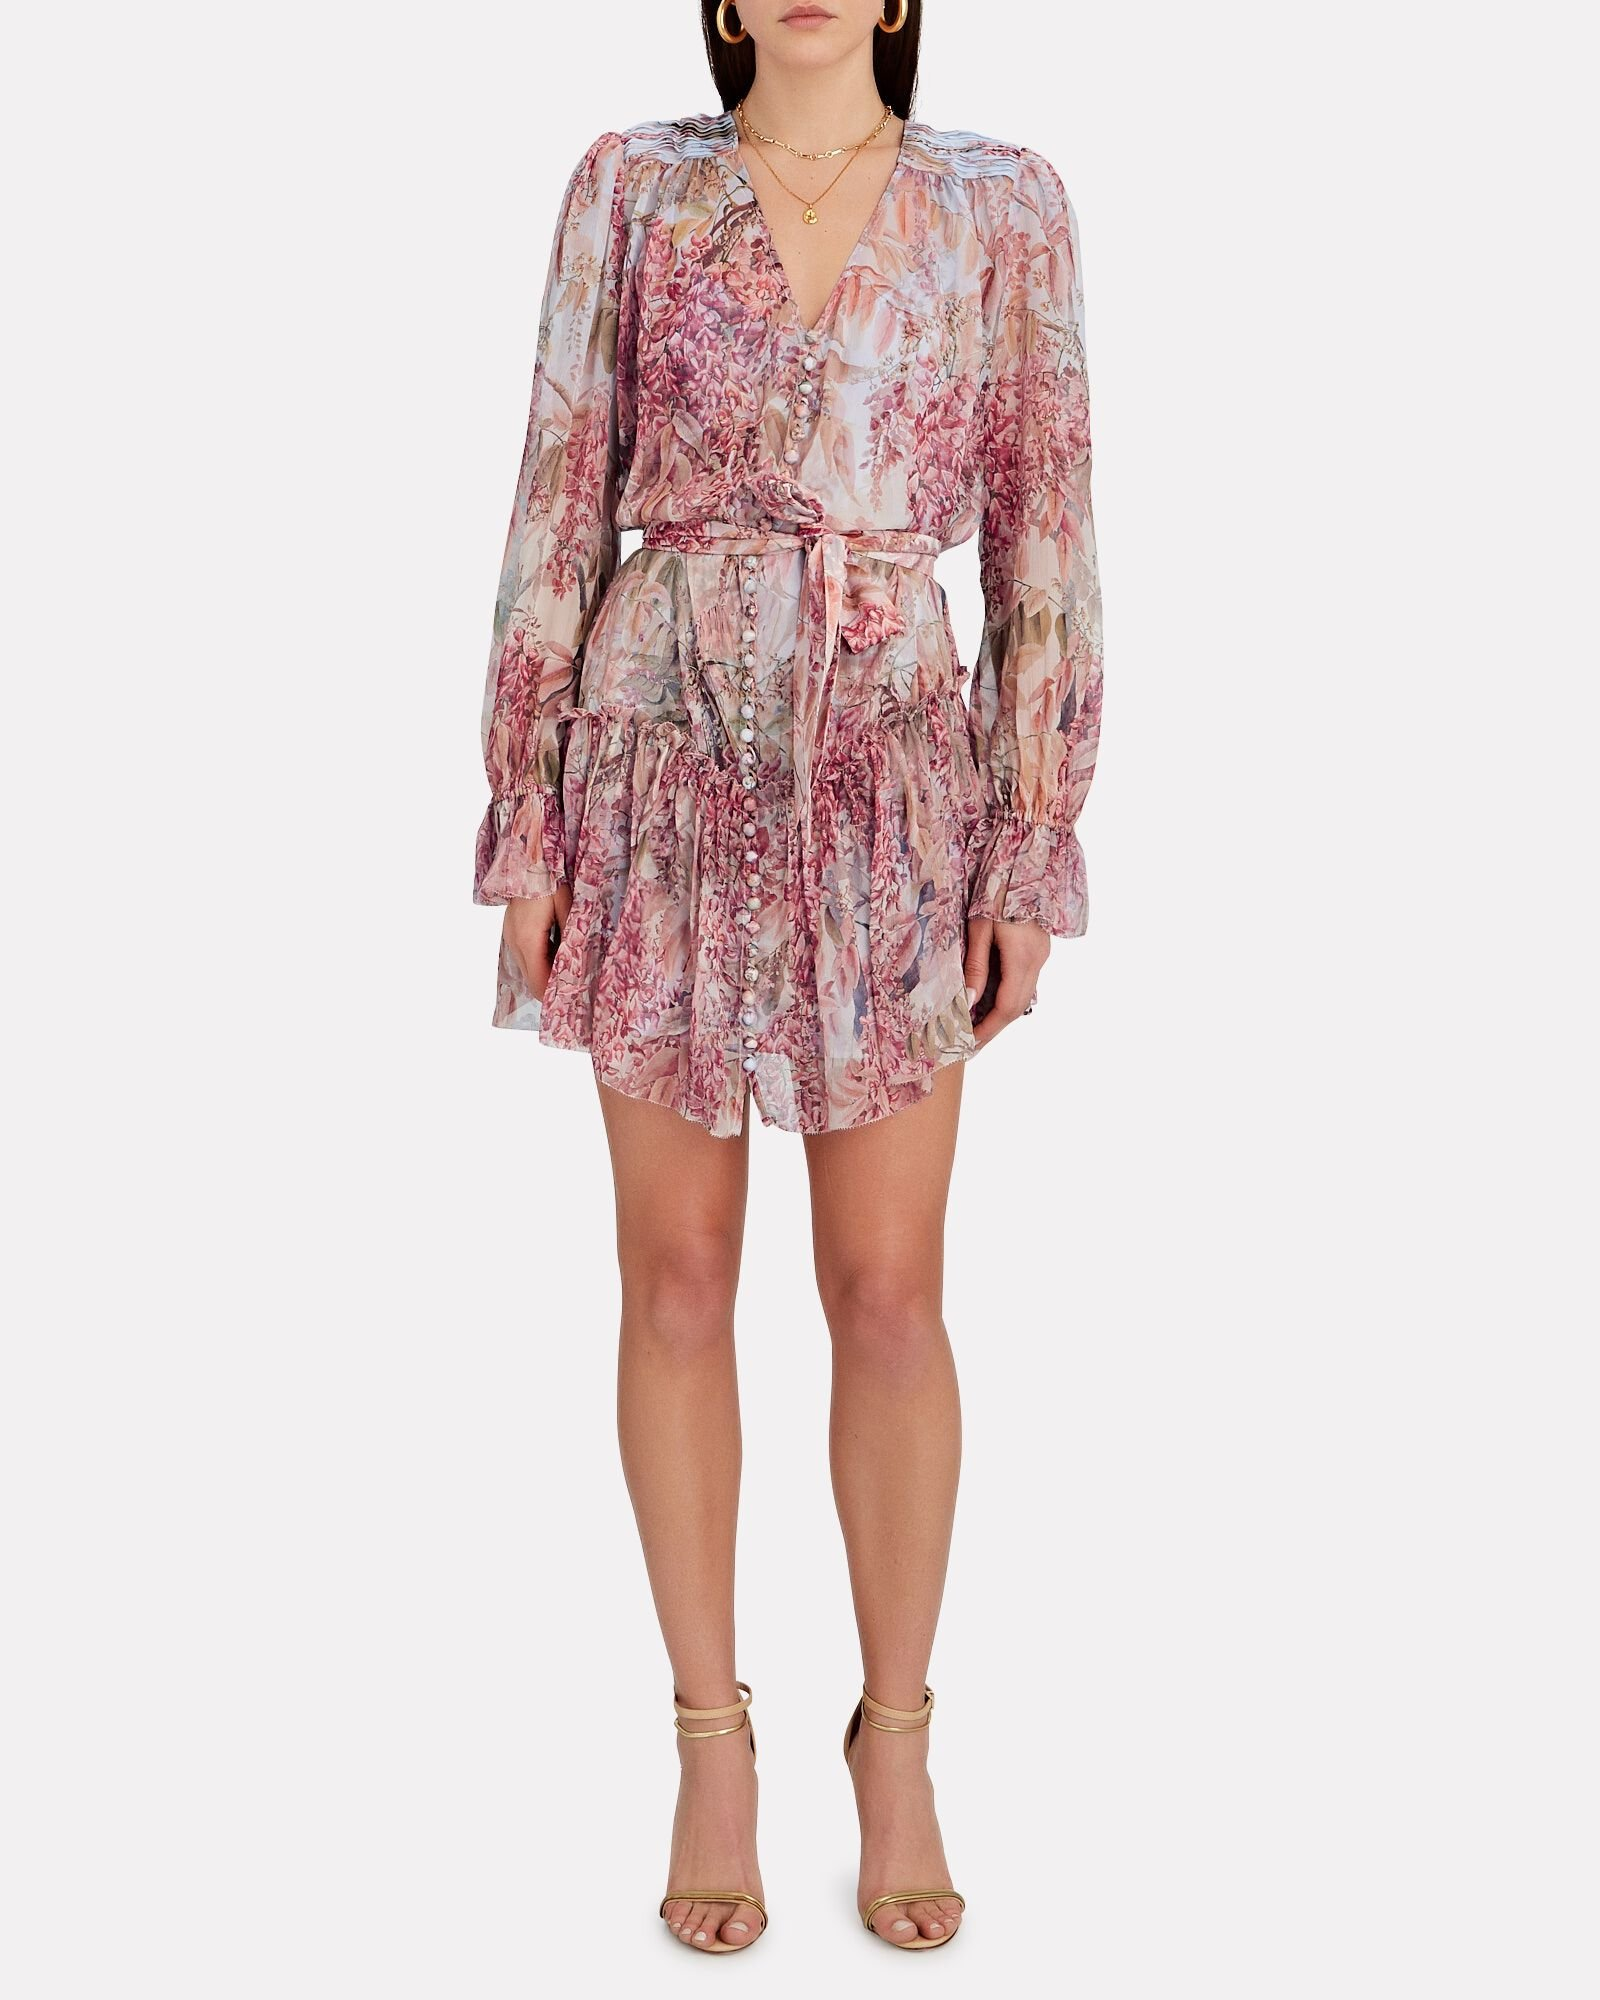 Botanica Floral Silk Mini Dress, MULTI, hi-res